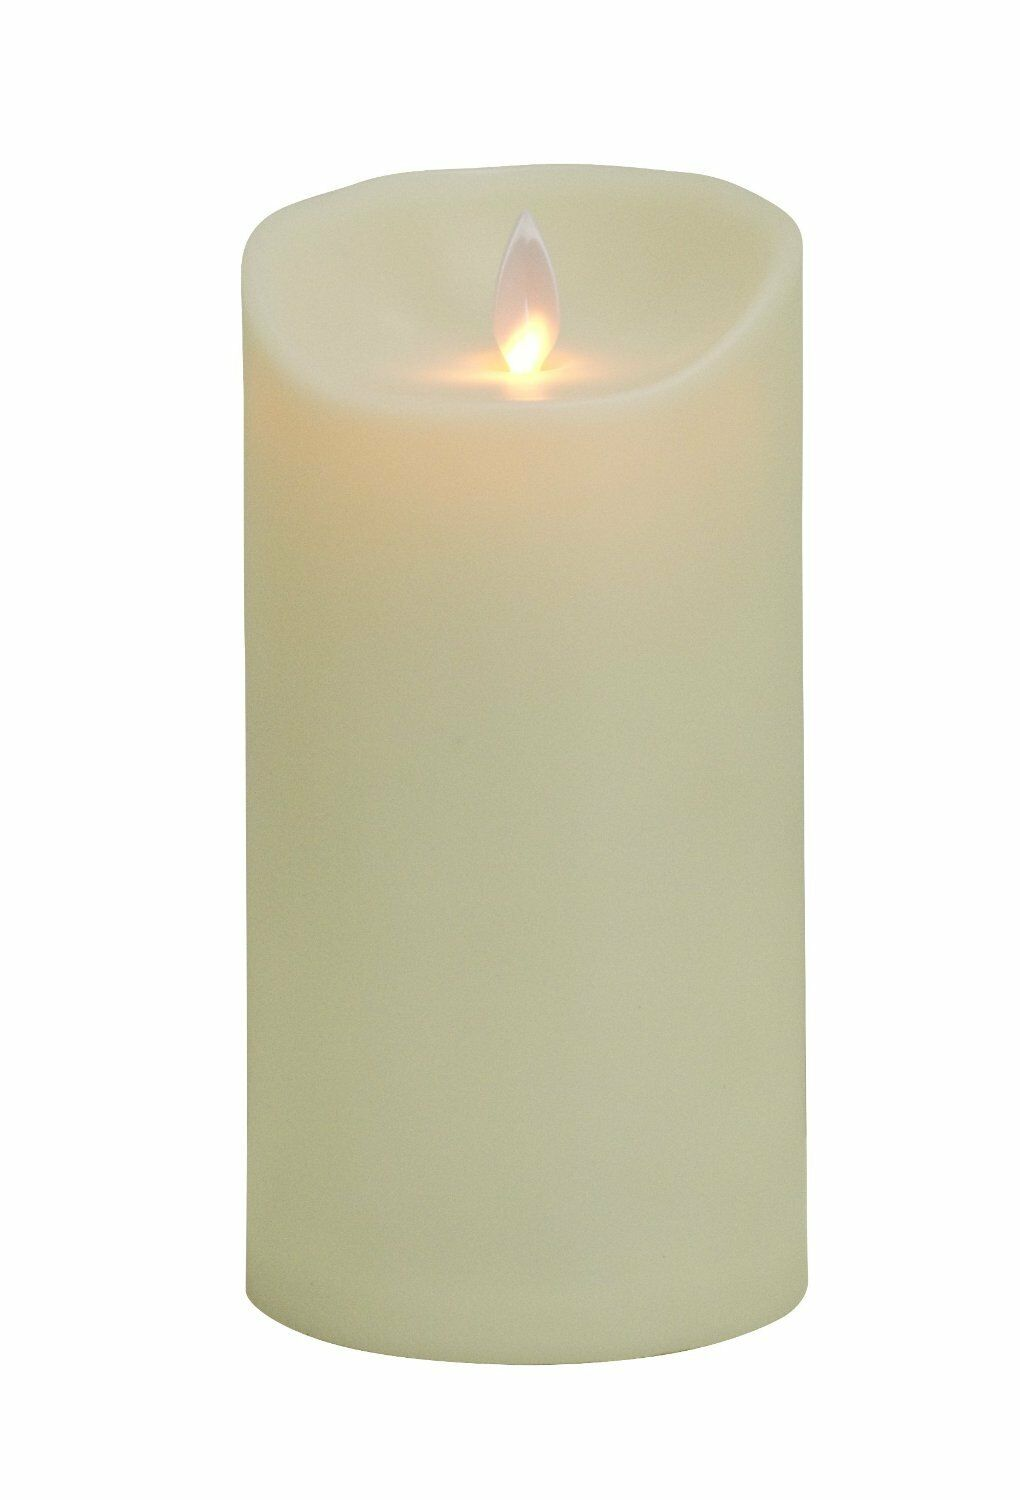 Luminara Flameless Candle Unscented Outdoor Pillar 7 Inch